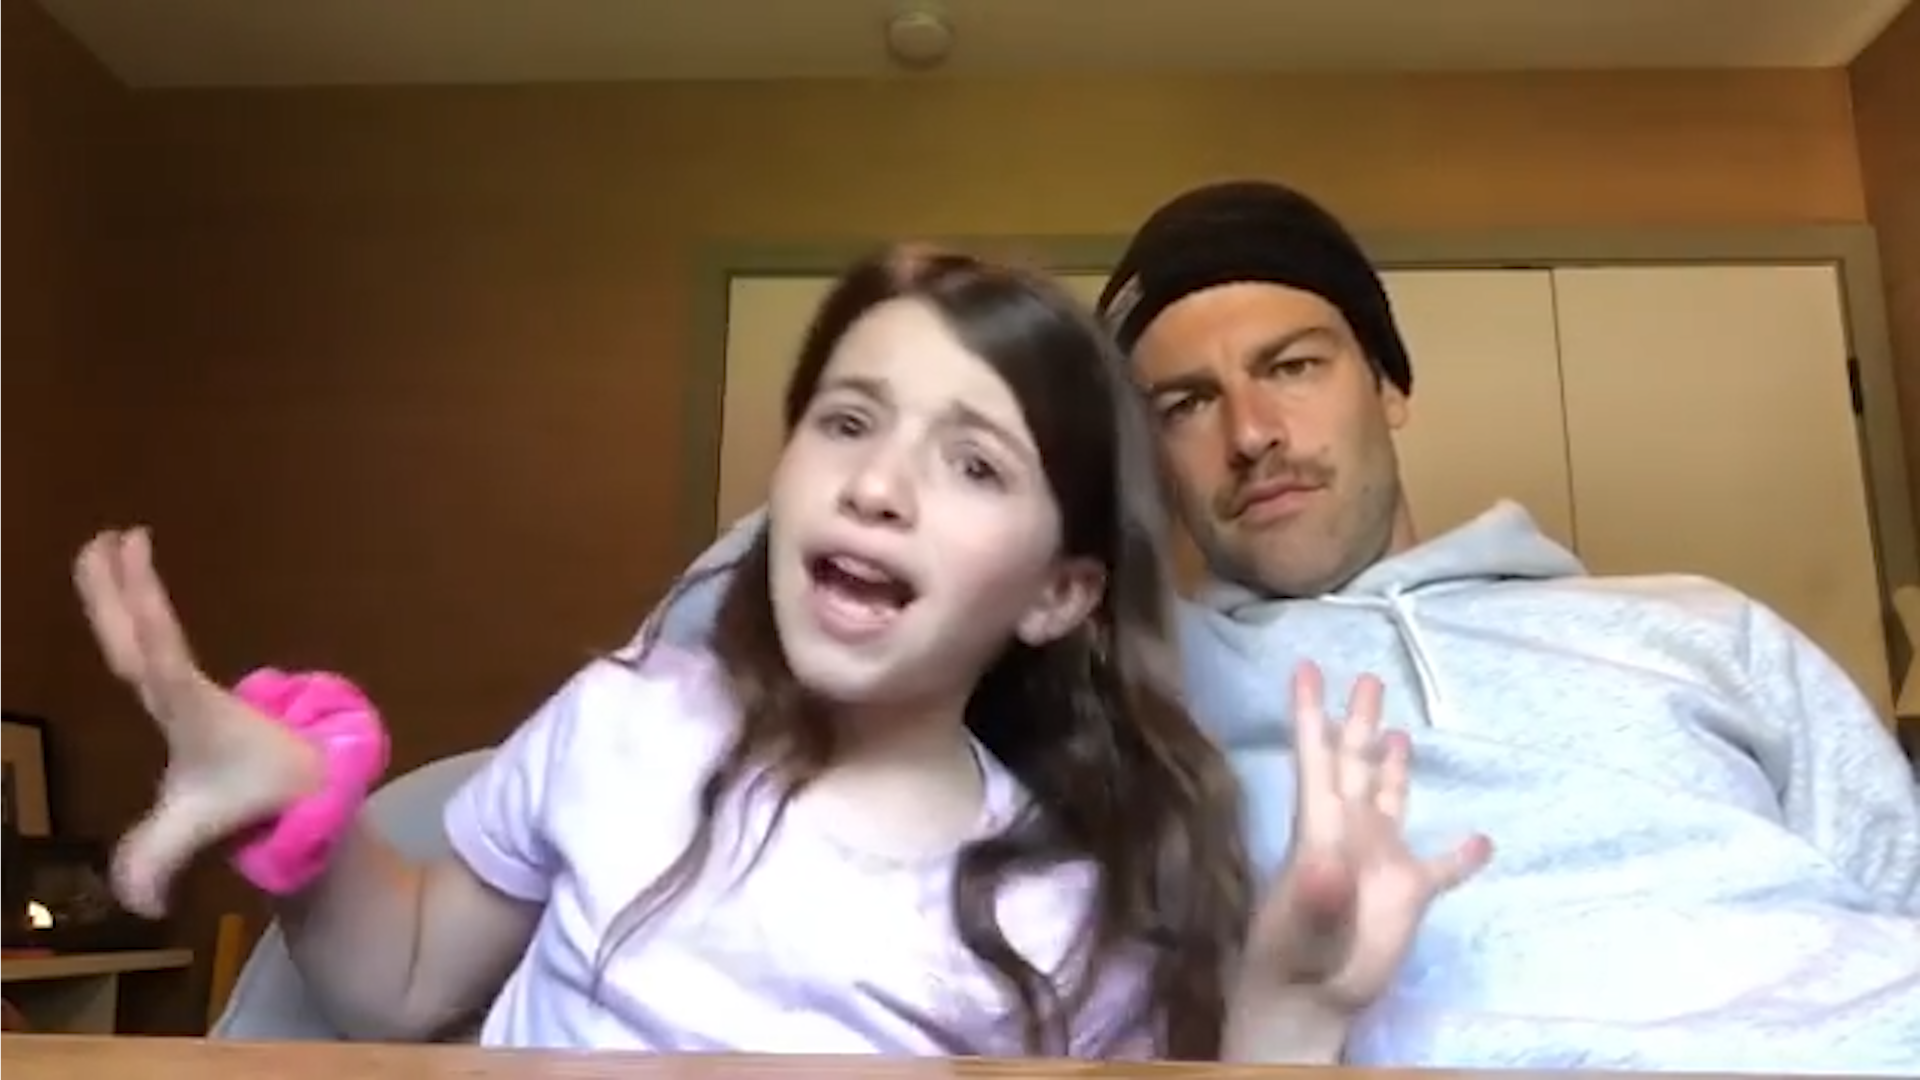 Max Greenfield homeschools his daughter during quarantine